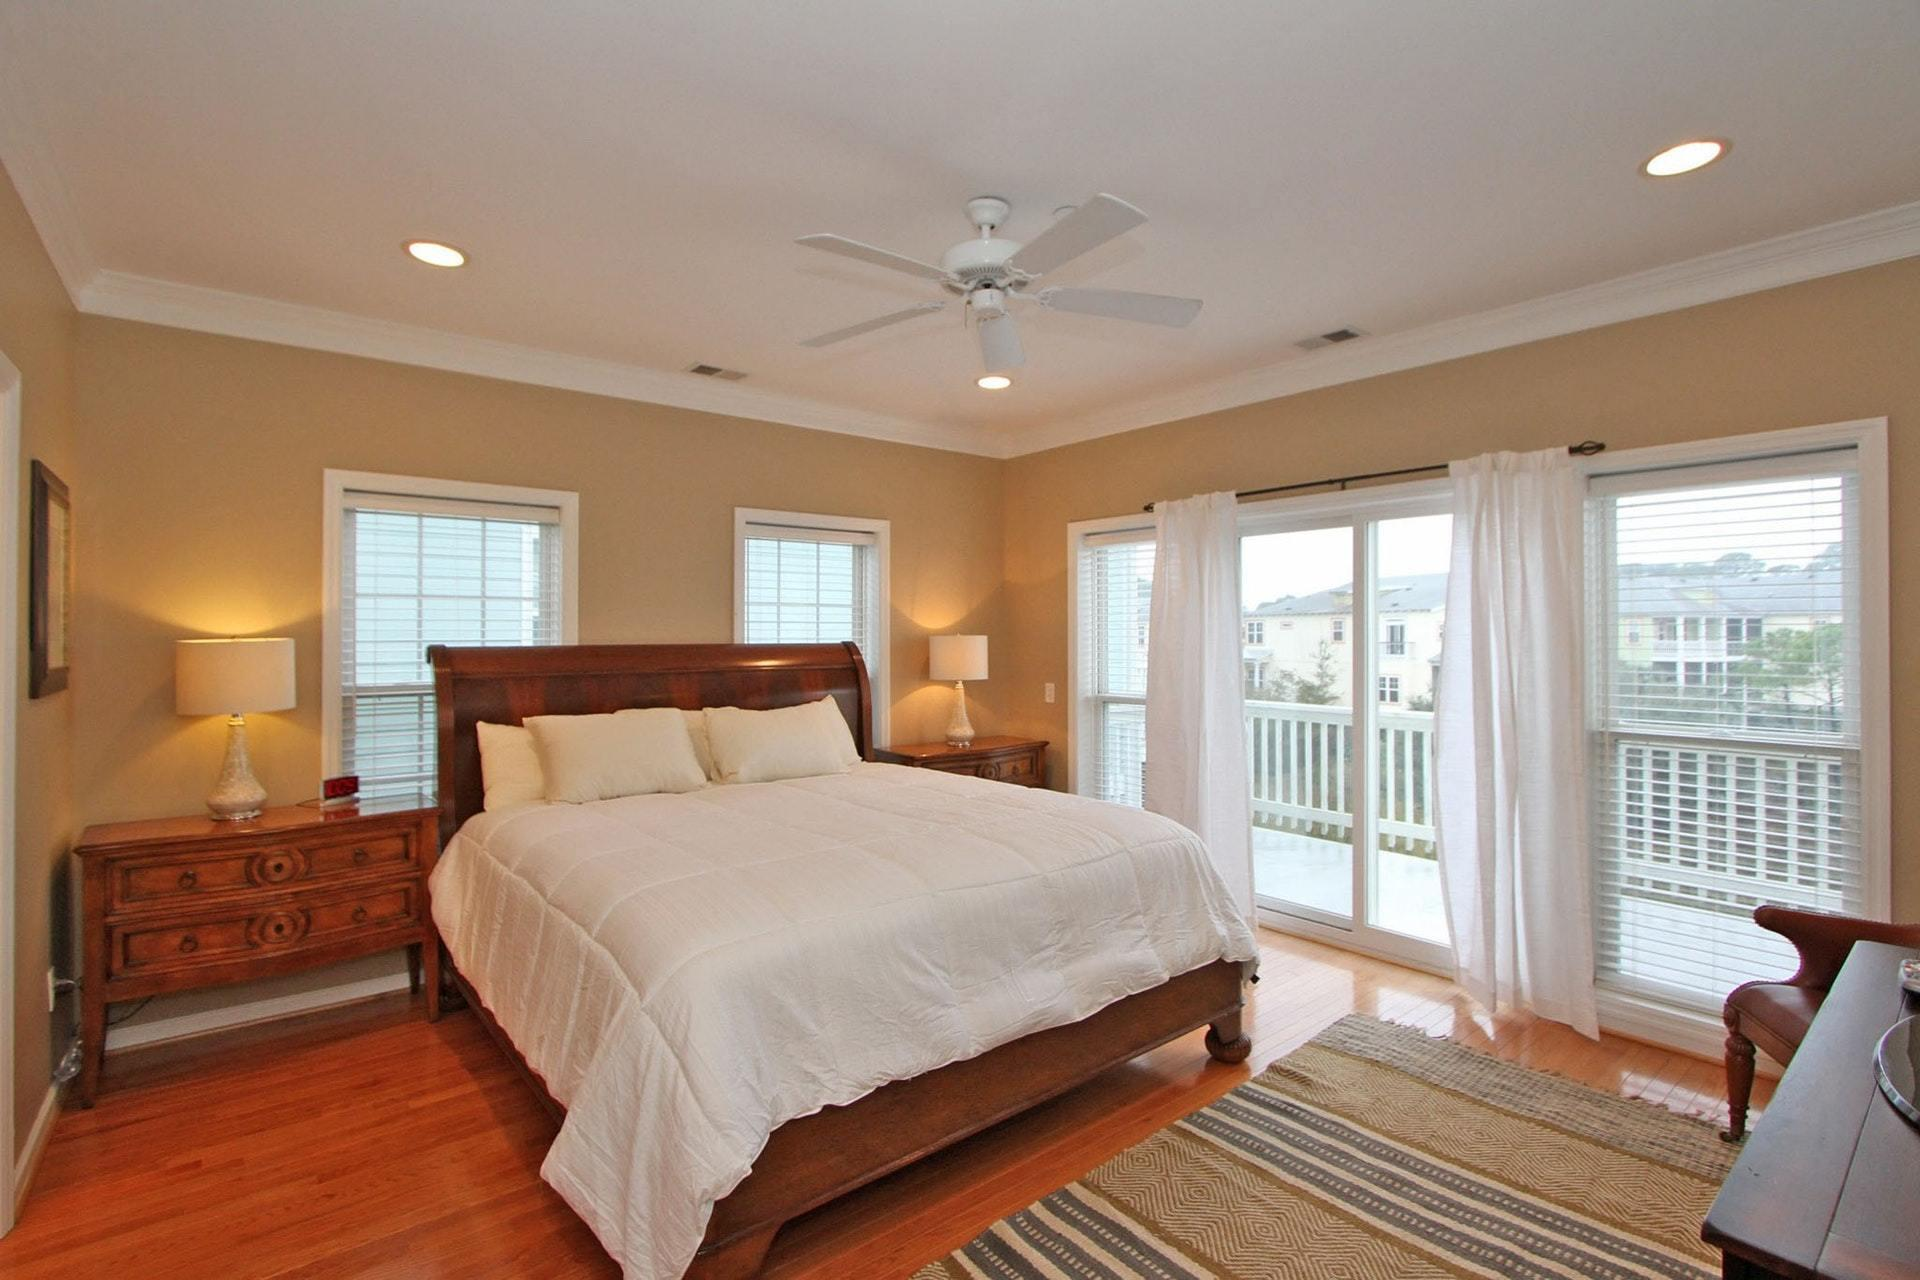 Waters Edge Homes For Sale - 85 2nd, Folly Beach, SC - 0